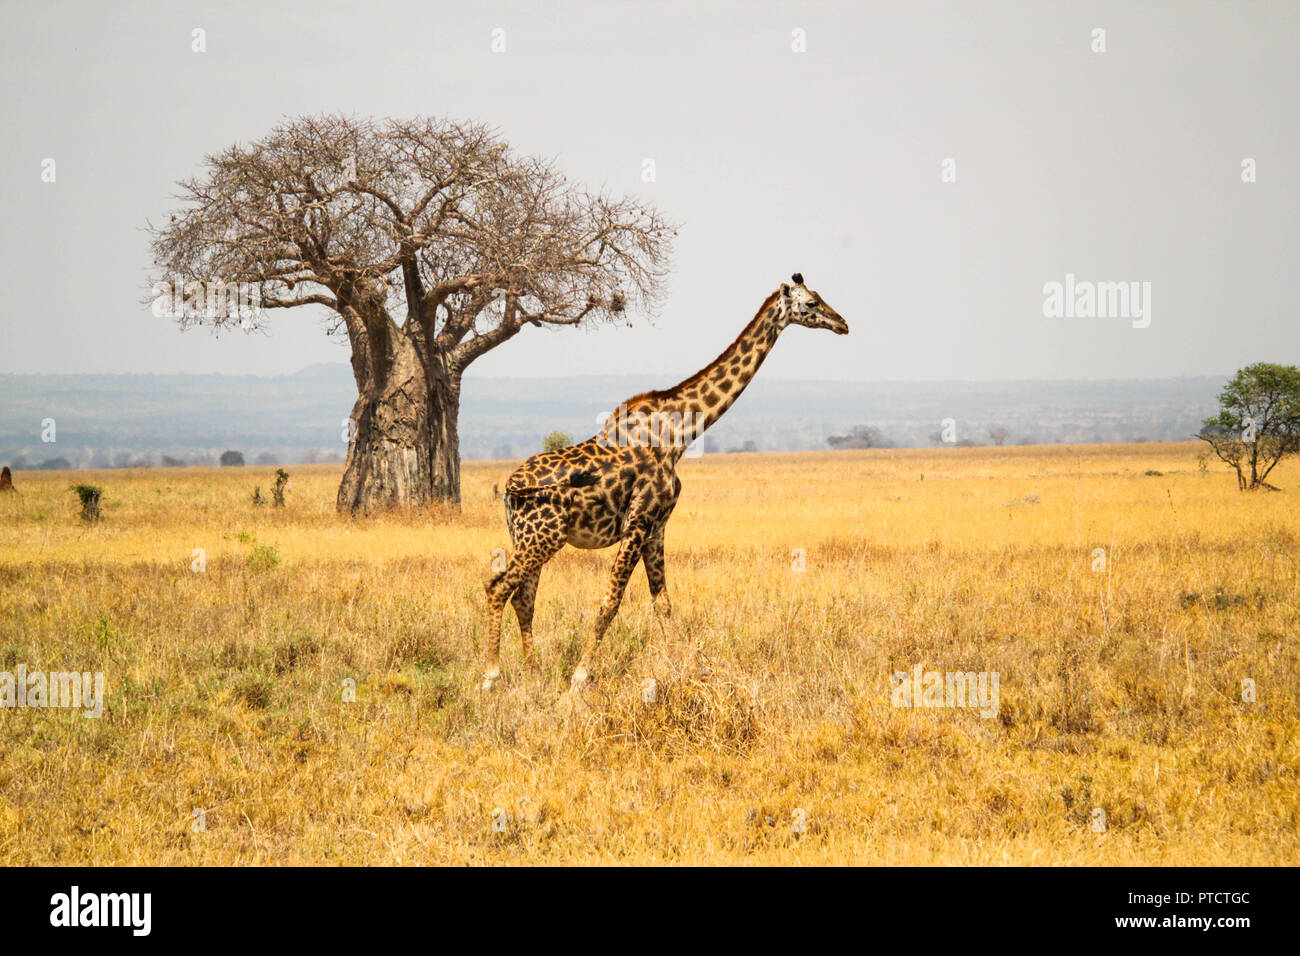 Maasai giraffe with baobab tree in background in the landscape of Serengeti - Stock Image